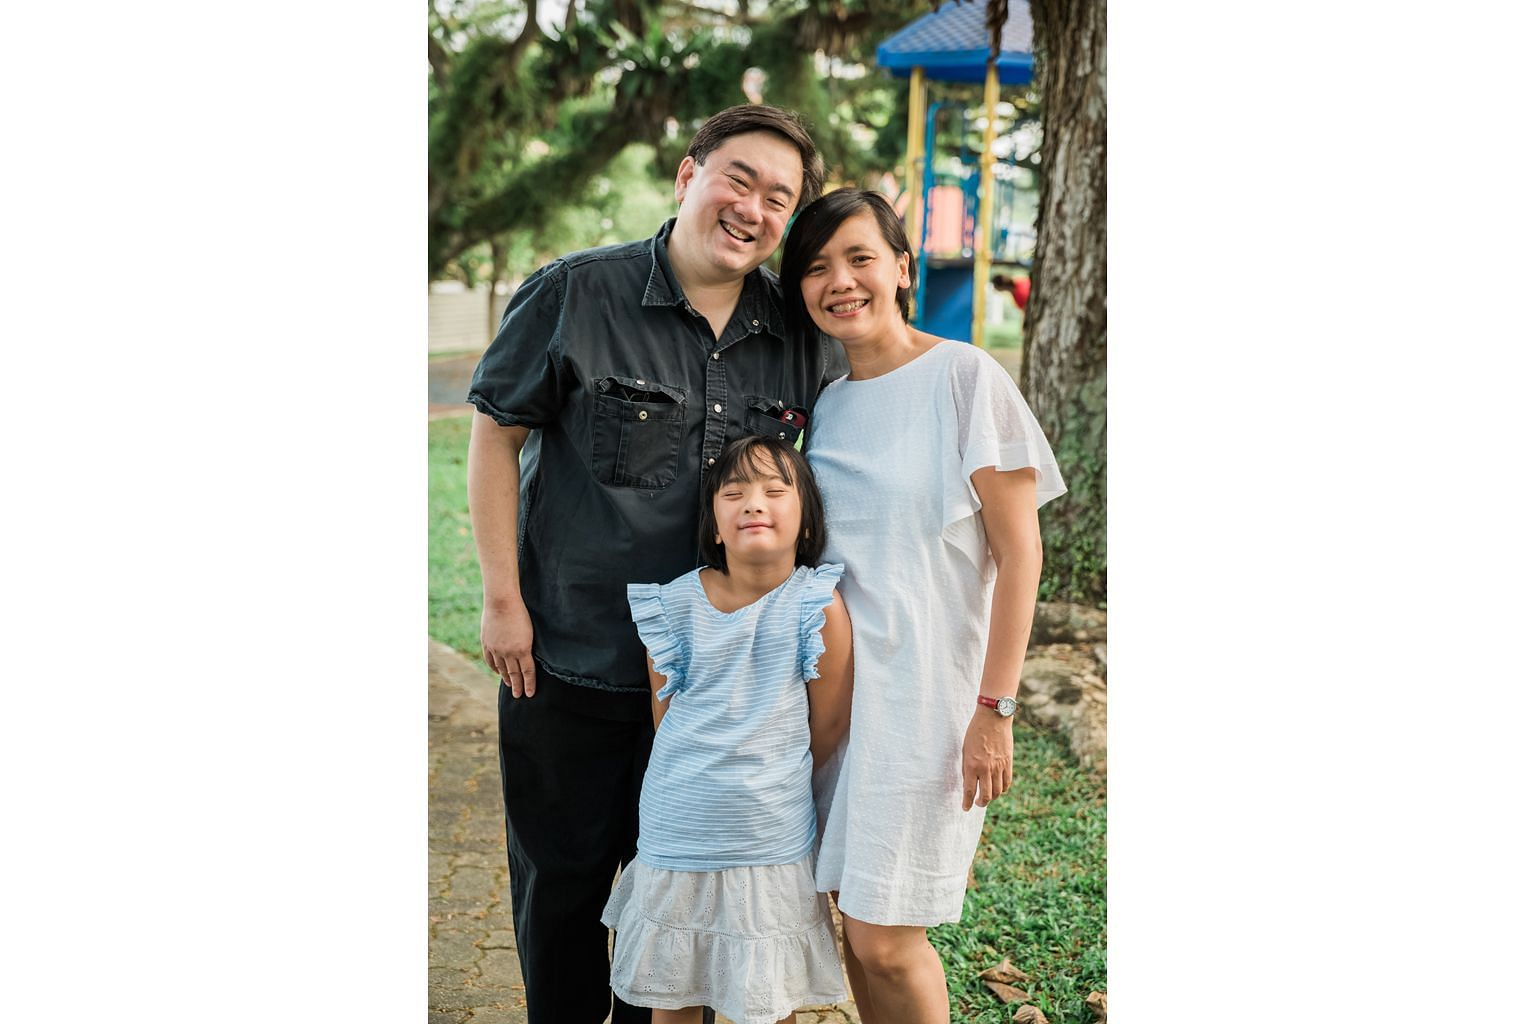 Mr Colin Goh and his wife Woo Yen Yen recently moved to Taiwan so their daughter Kai Yen can learn Chinese.